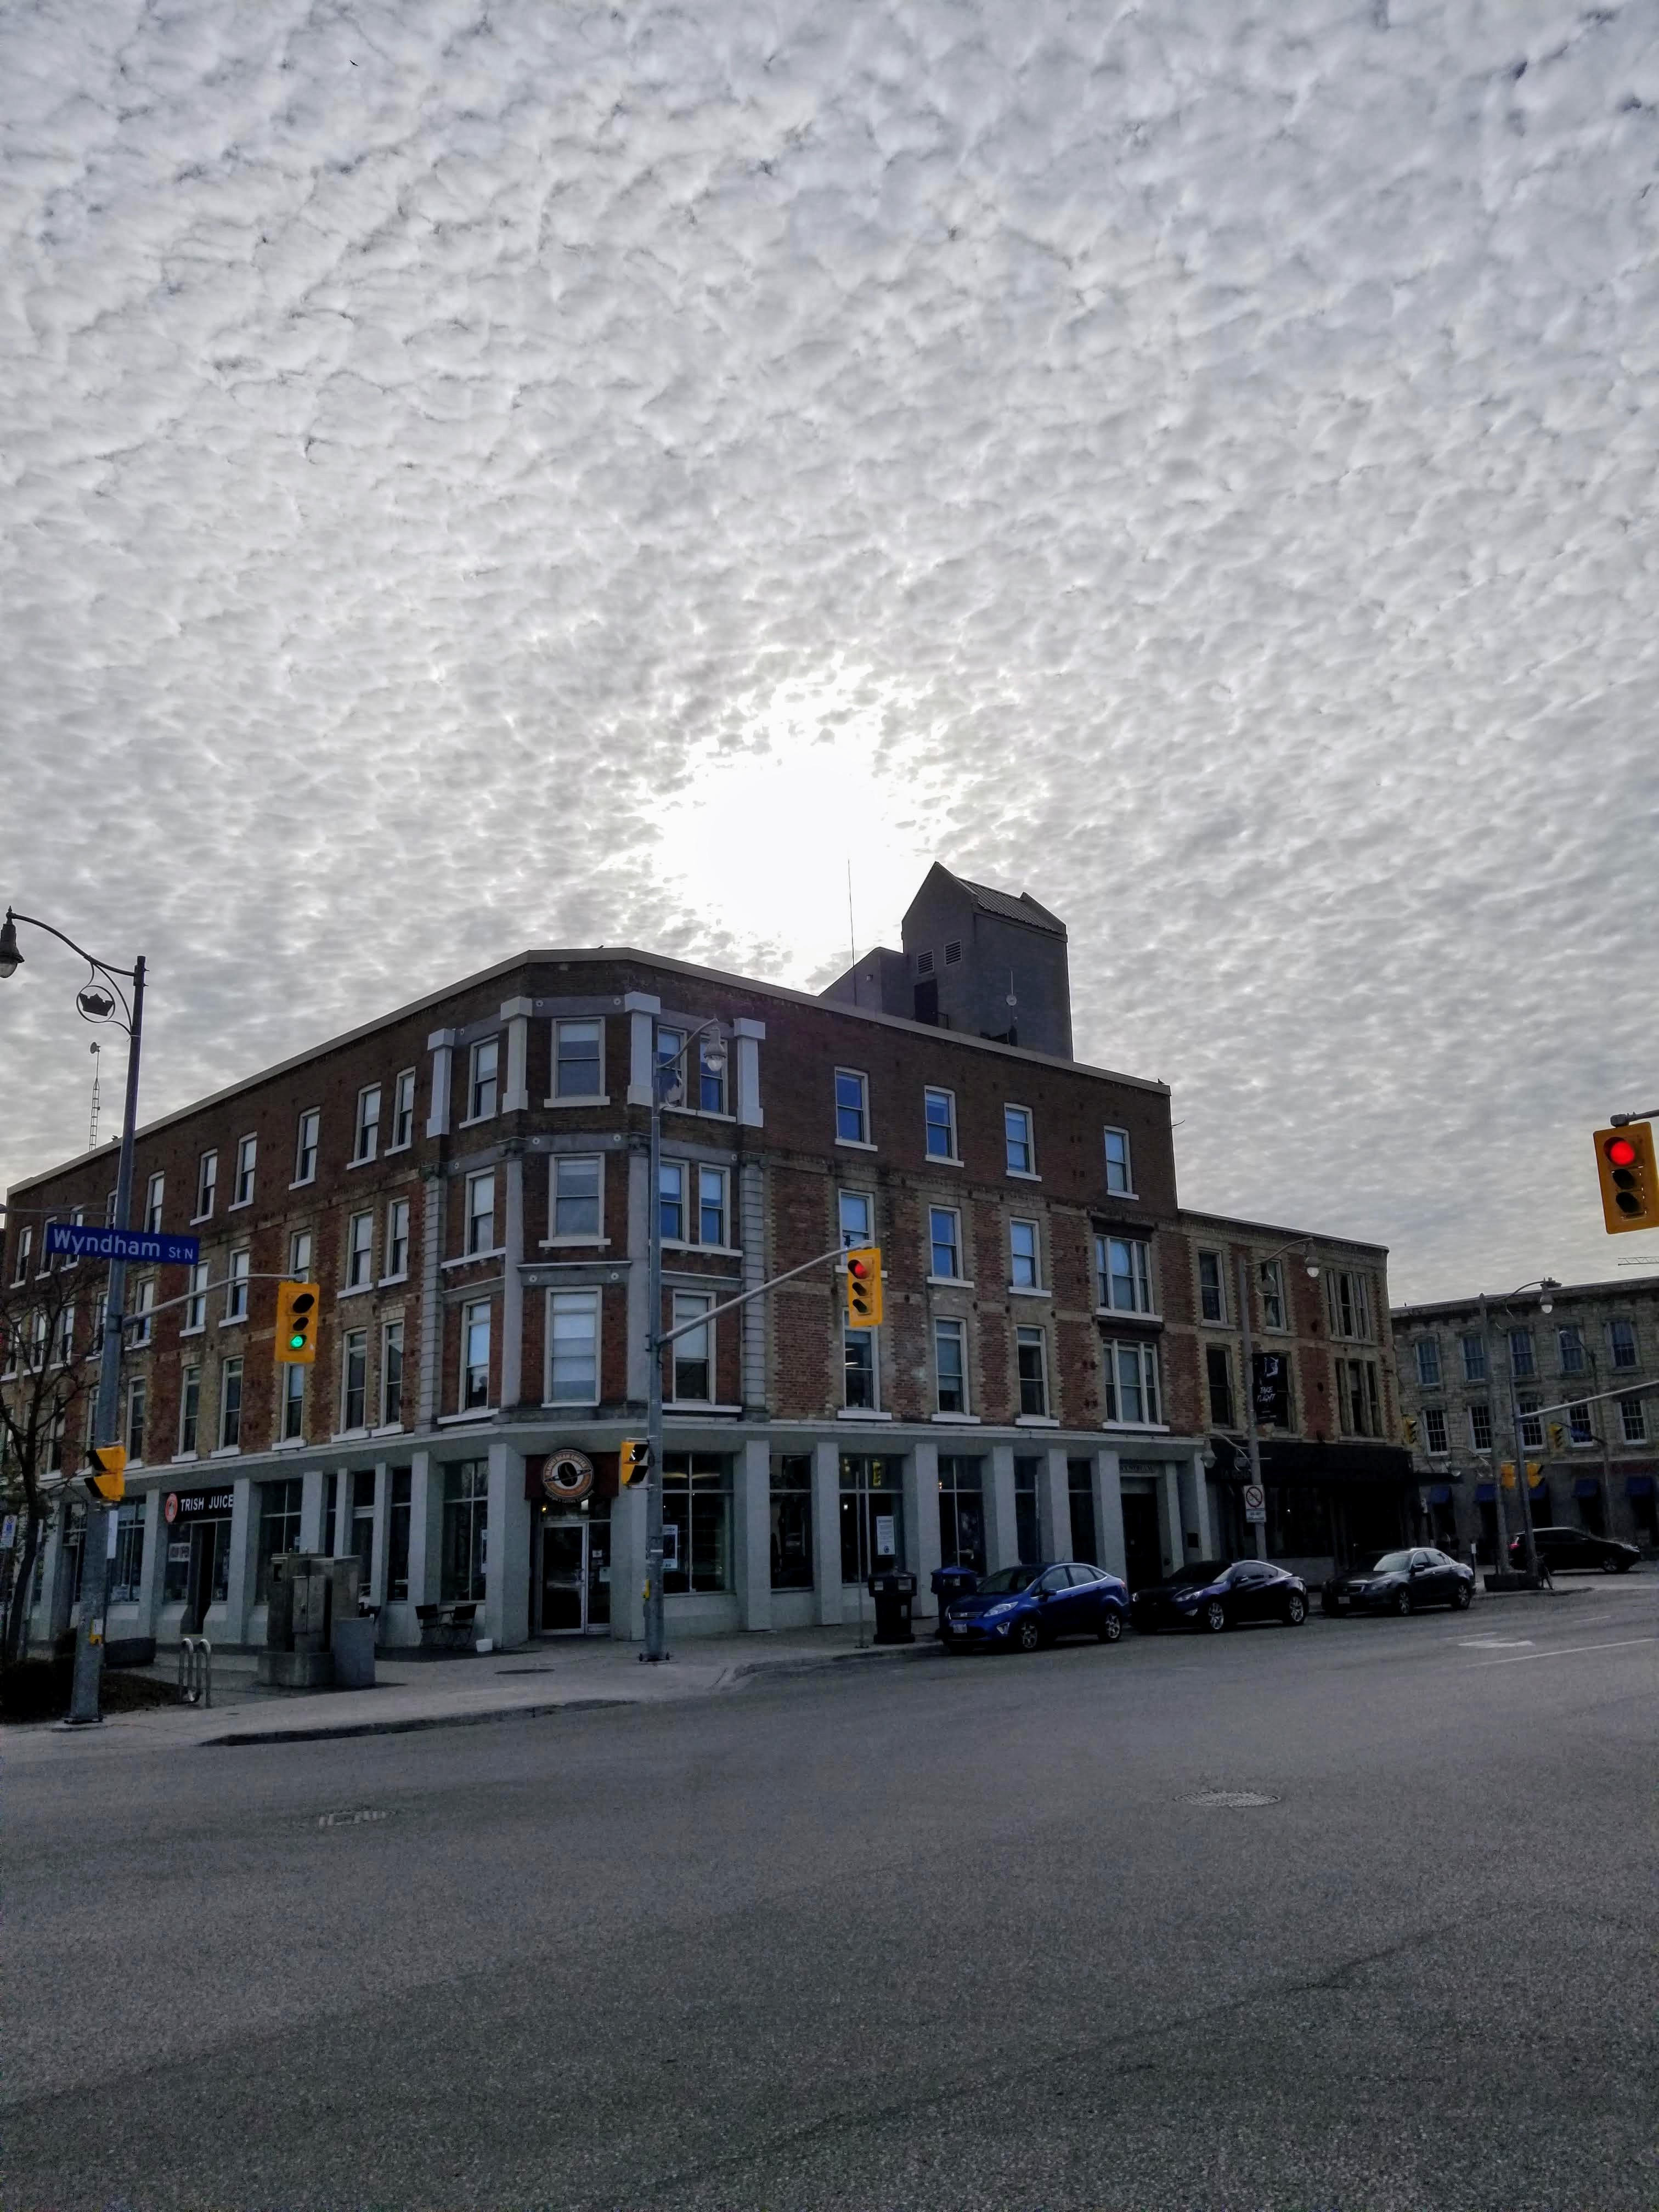 Clouds in downtown Guelph